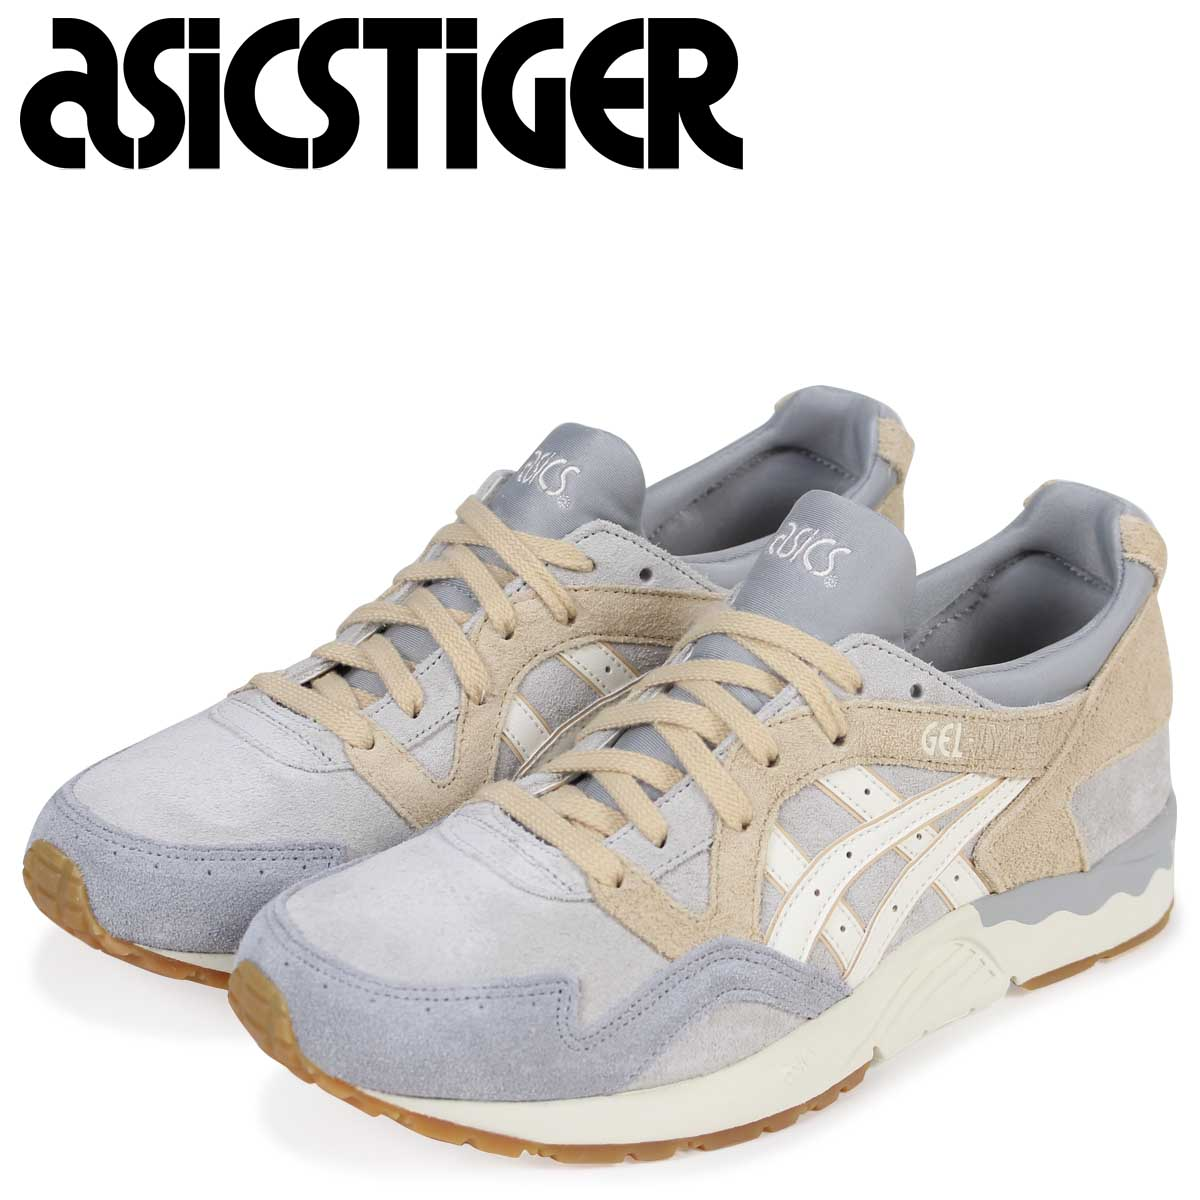 super popular 17711 cd6a9 asics Tiger ASICS tiger gel light sneakers GEL-LYTE V H833L-9600 men gray